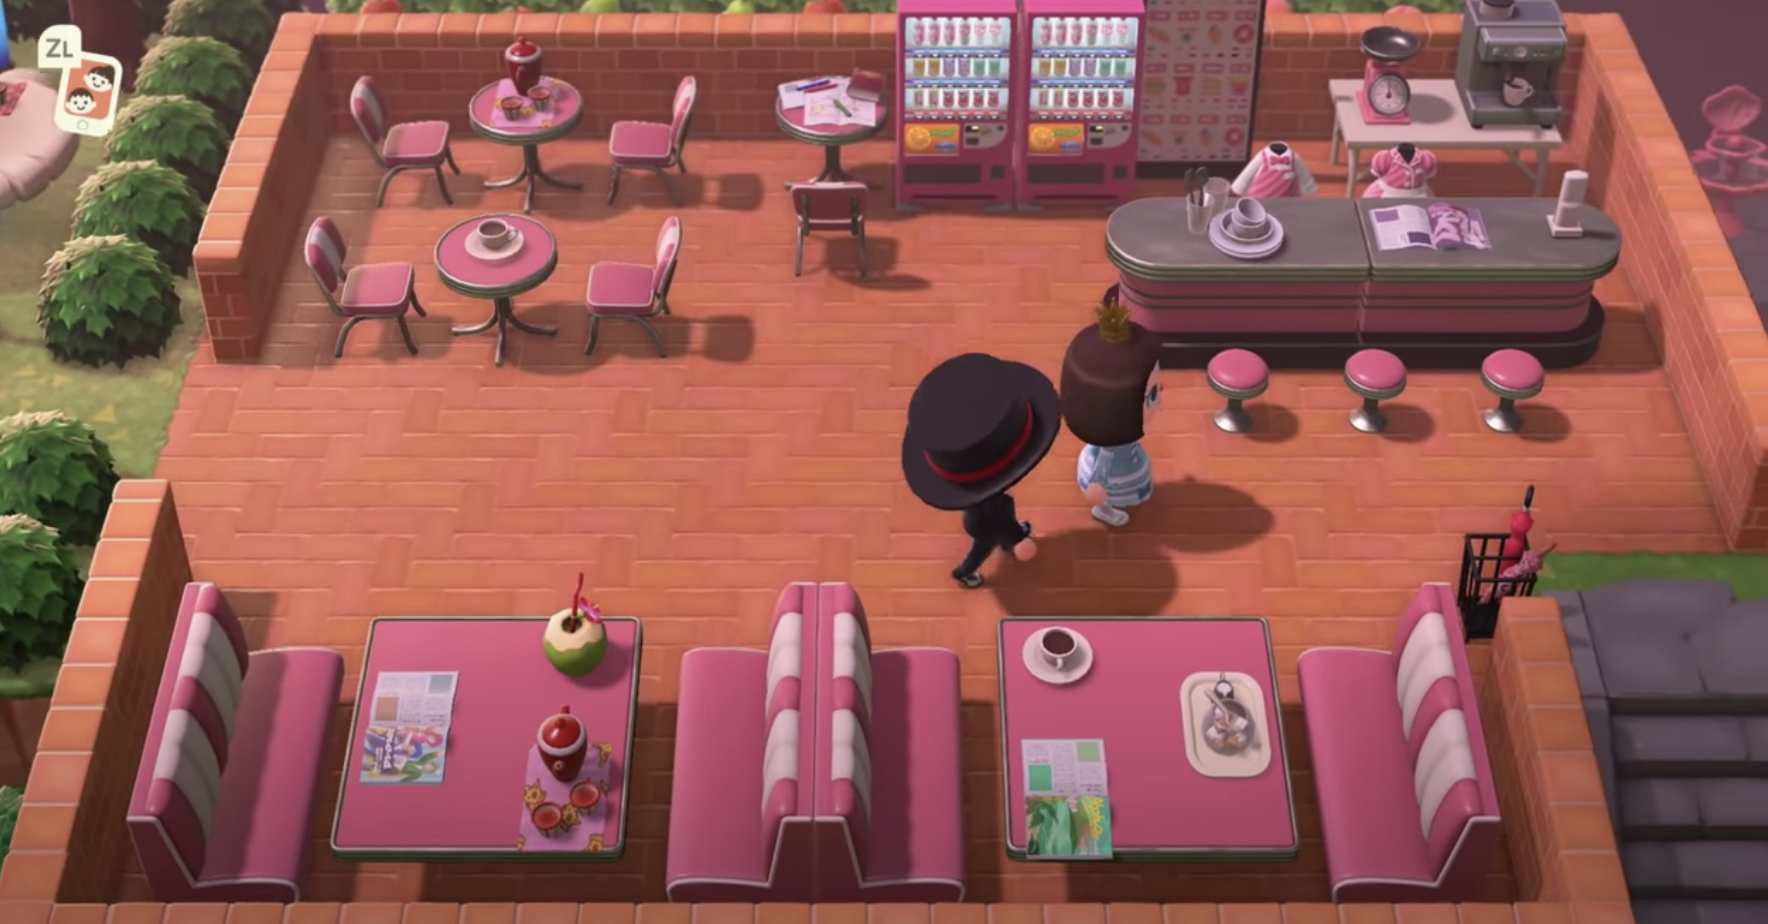 Acnh Outdoor Diner Animal Crossing Game New Animal Crossing Animal Crossing Wild World